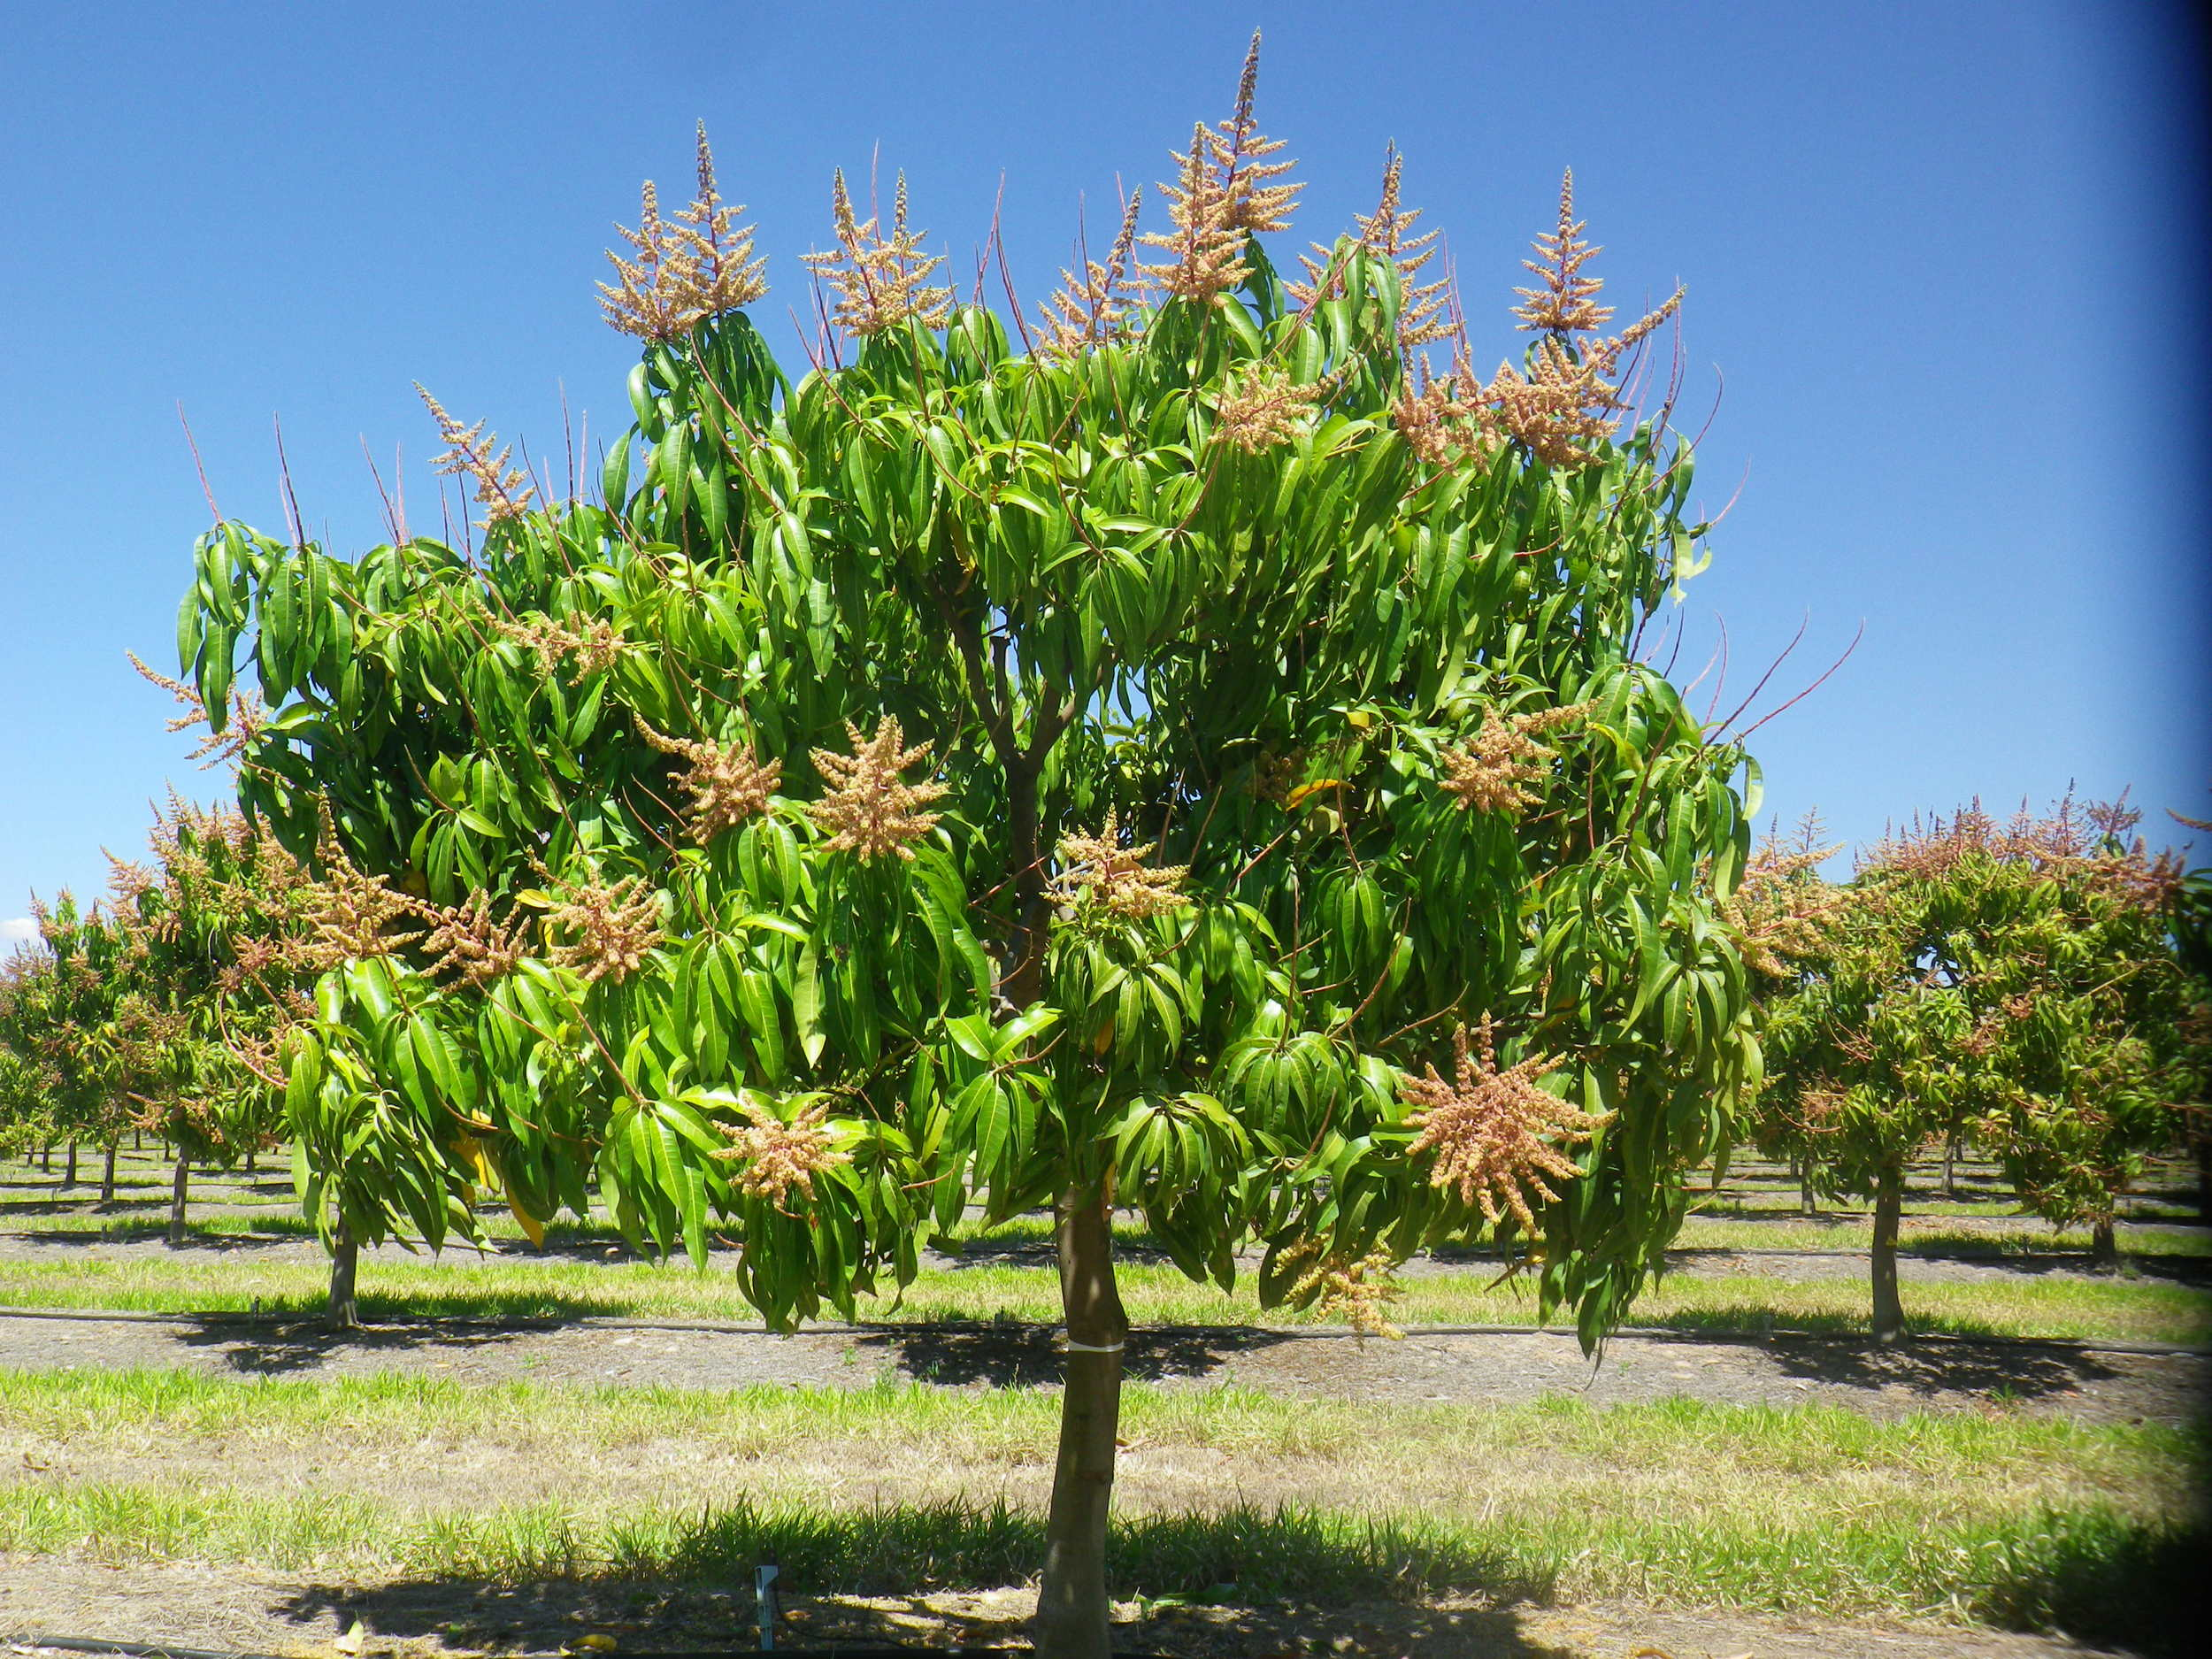 Calypso trees used in the crop load study with 10% flowering (90% flowers removed.